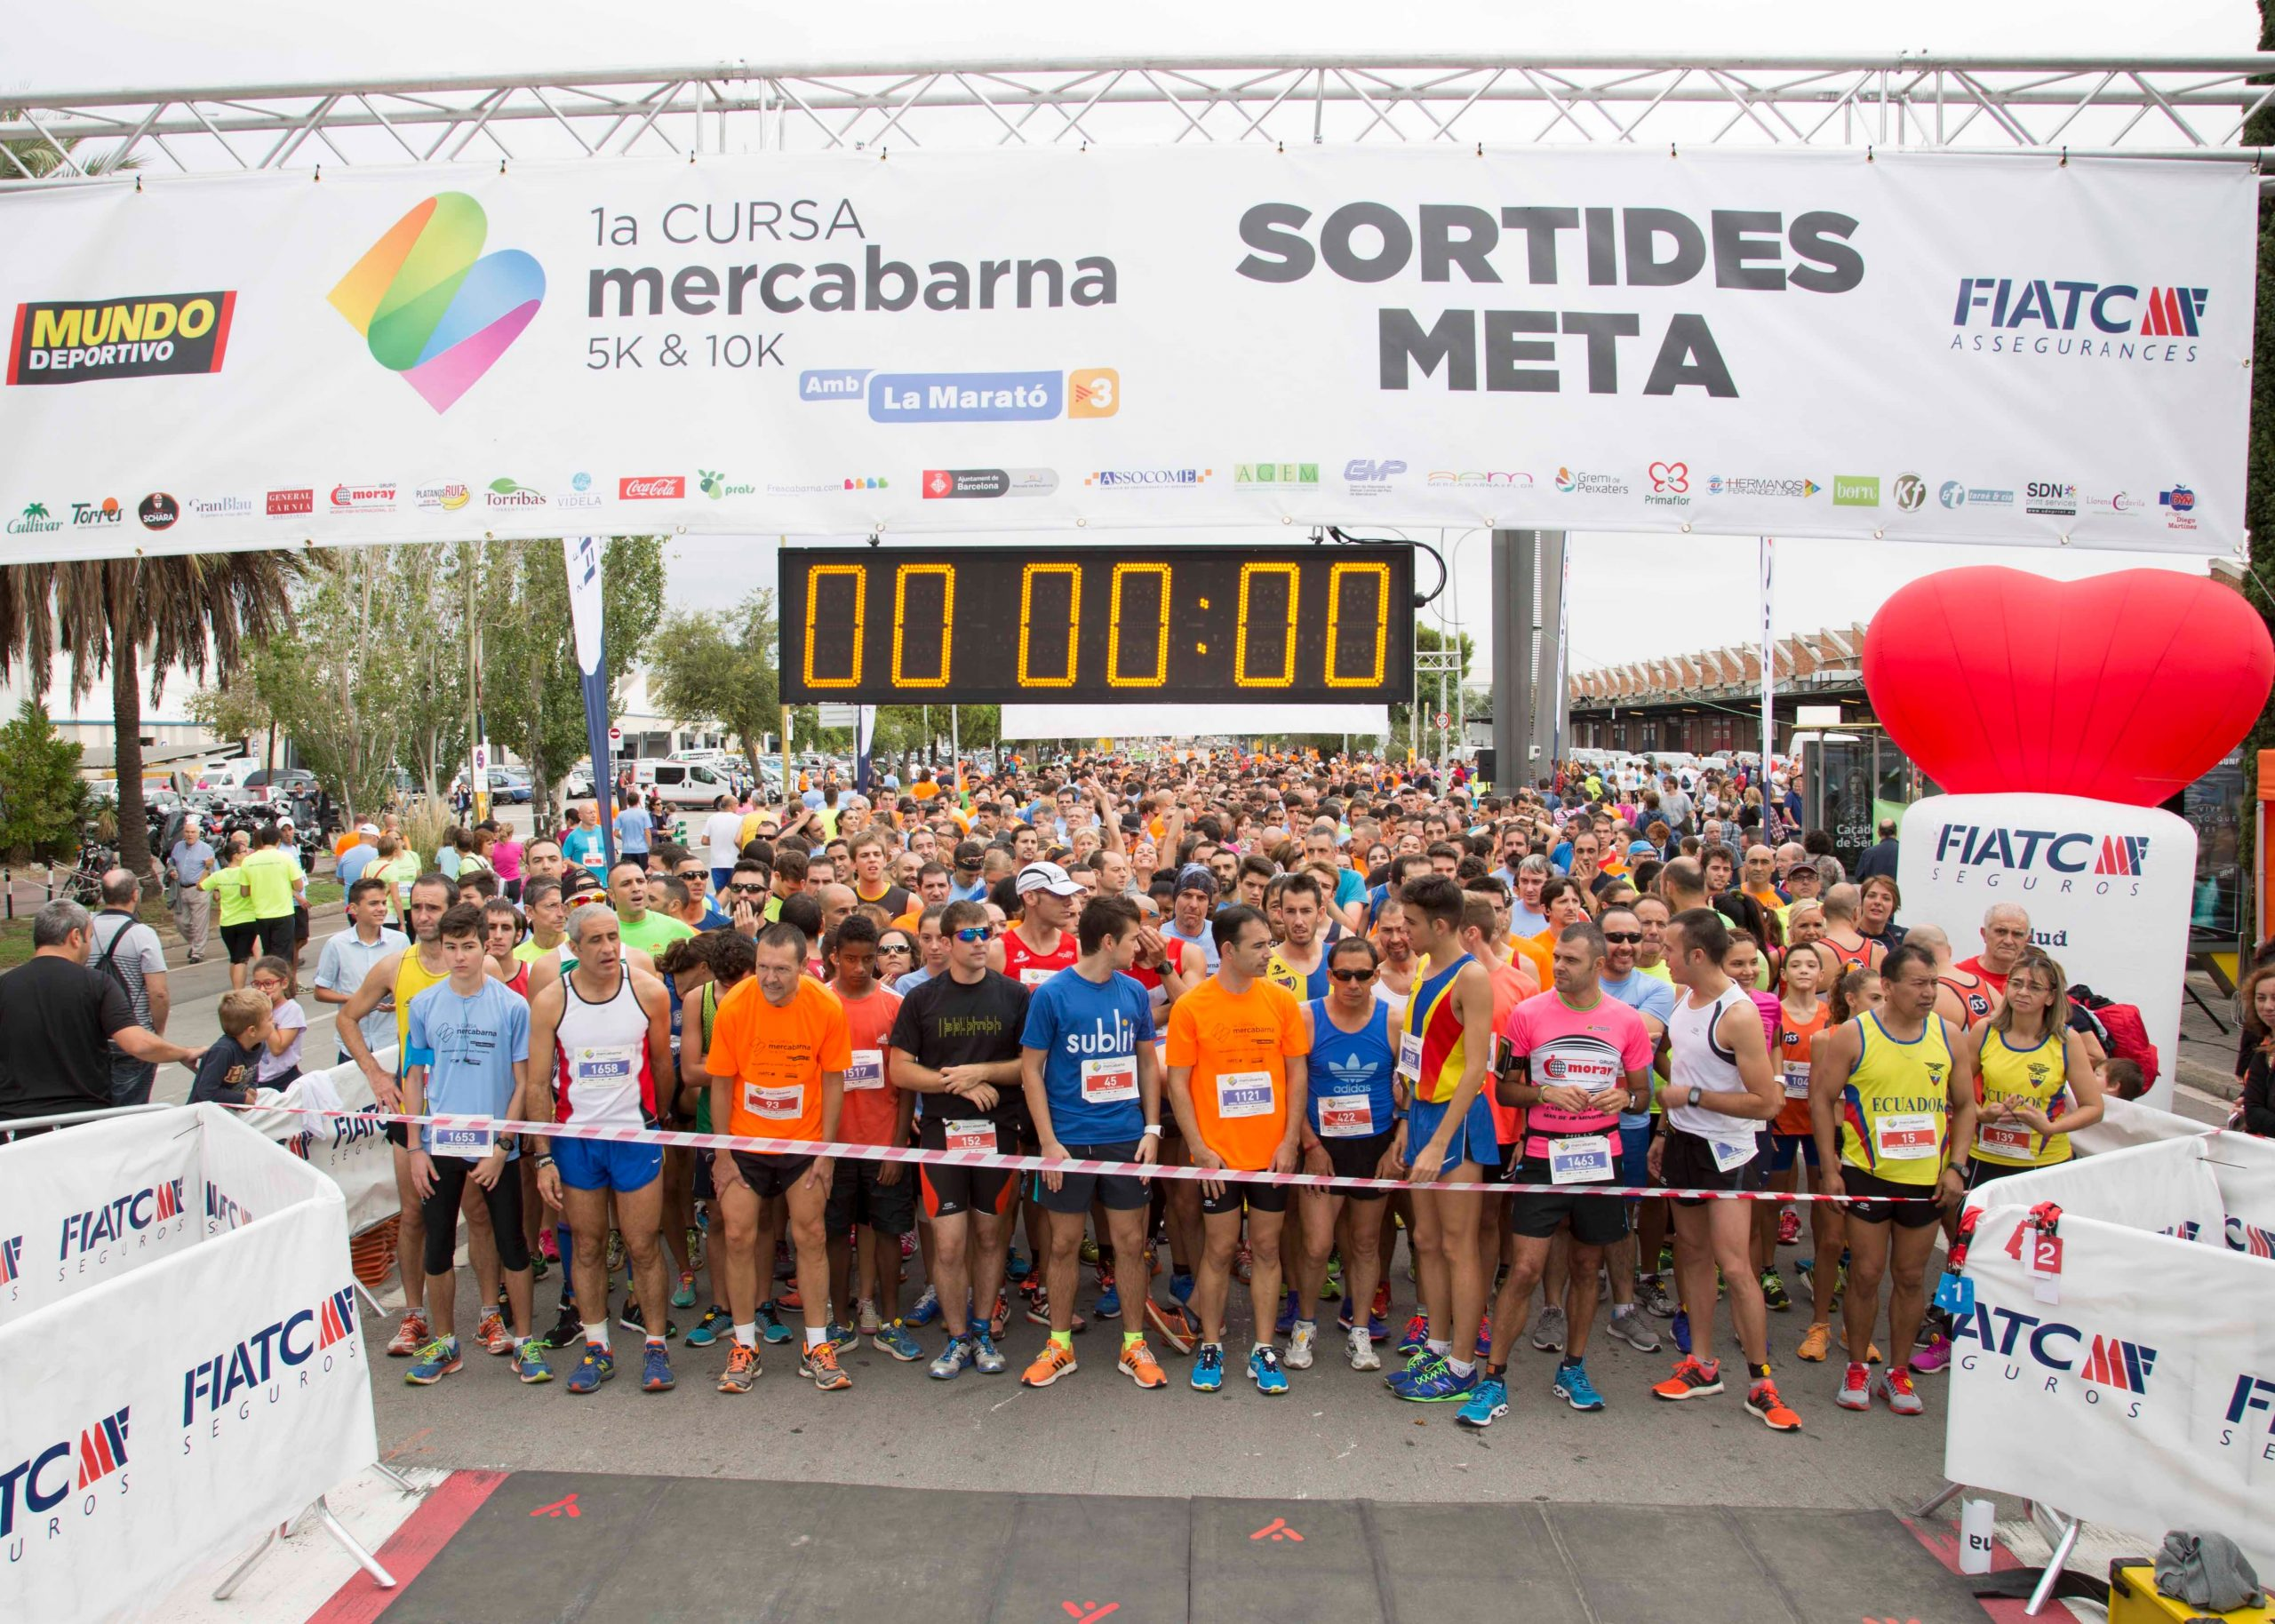 The inaugural Mercabarna fun run attracted more than 3,000 people to Barcelona's wholesale market on Sunday. Along with the race itself - in which 1,520 runners participated – there were a range of activities related to fresh food and designed to showcase the key role of the Mercabarna food complex, one of largest in Europe.